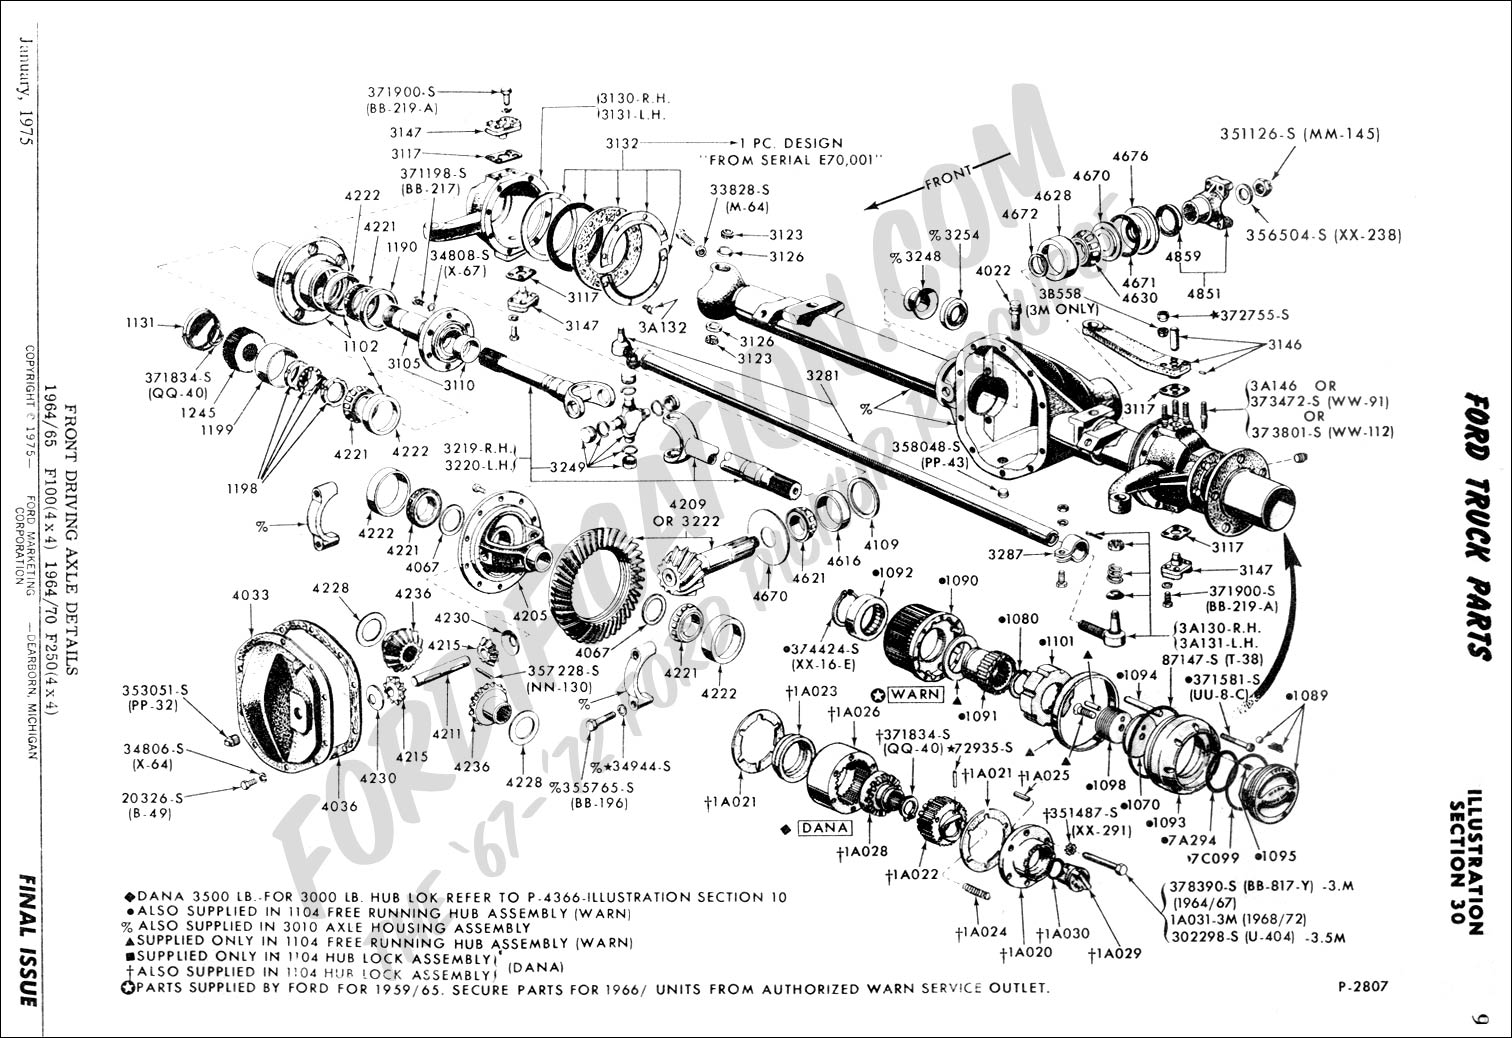 Discussion T10946 ds615181 besides Schematics a also 1965 Ford Truck Electrical Wiring together with 1990 Ford F 150 Fuel System Diagram as well 2000 Chevy Silverado Front Suspension Diagram. on 1997 ford f350 steering column diagram